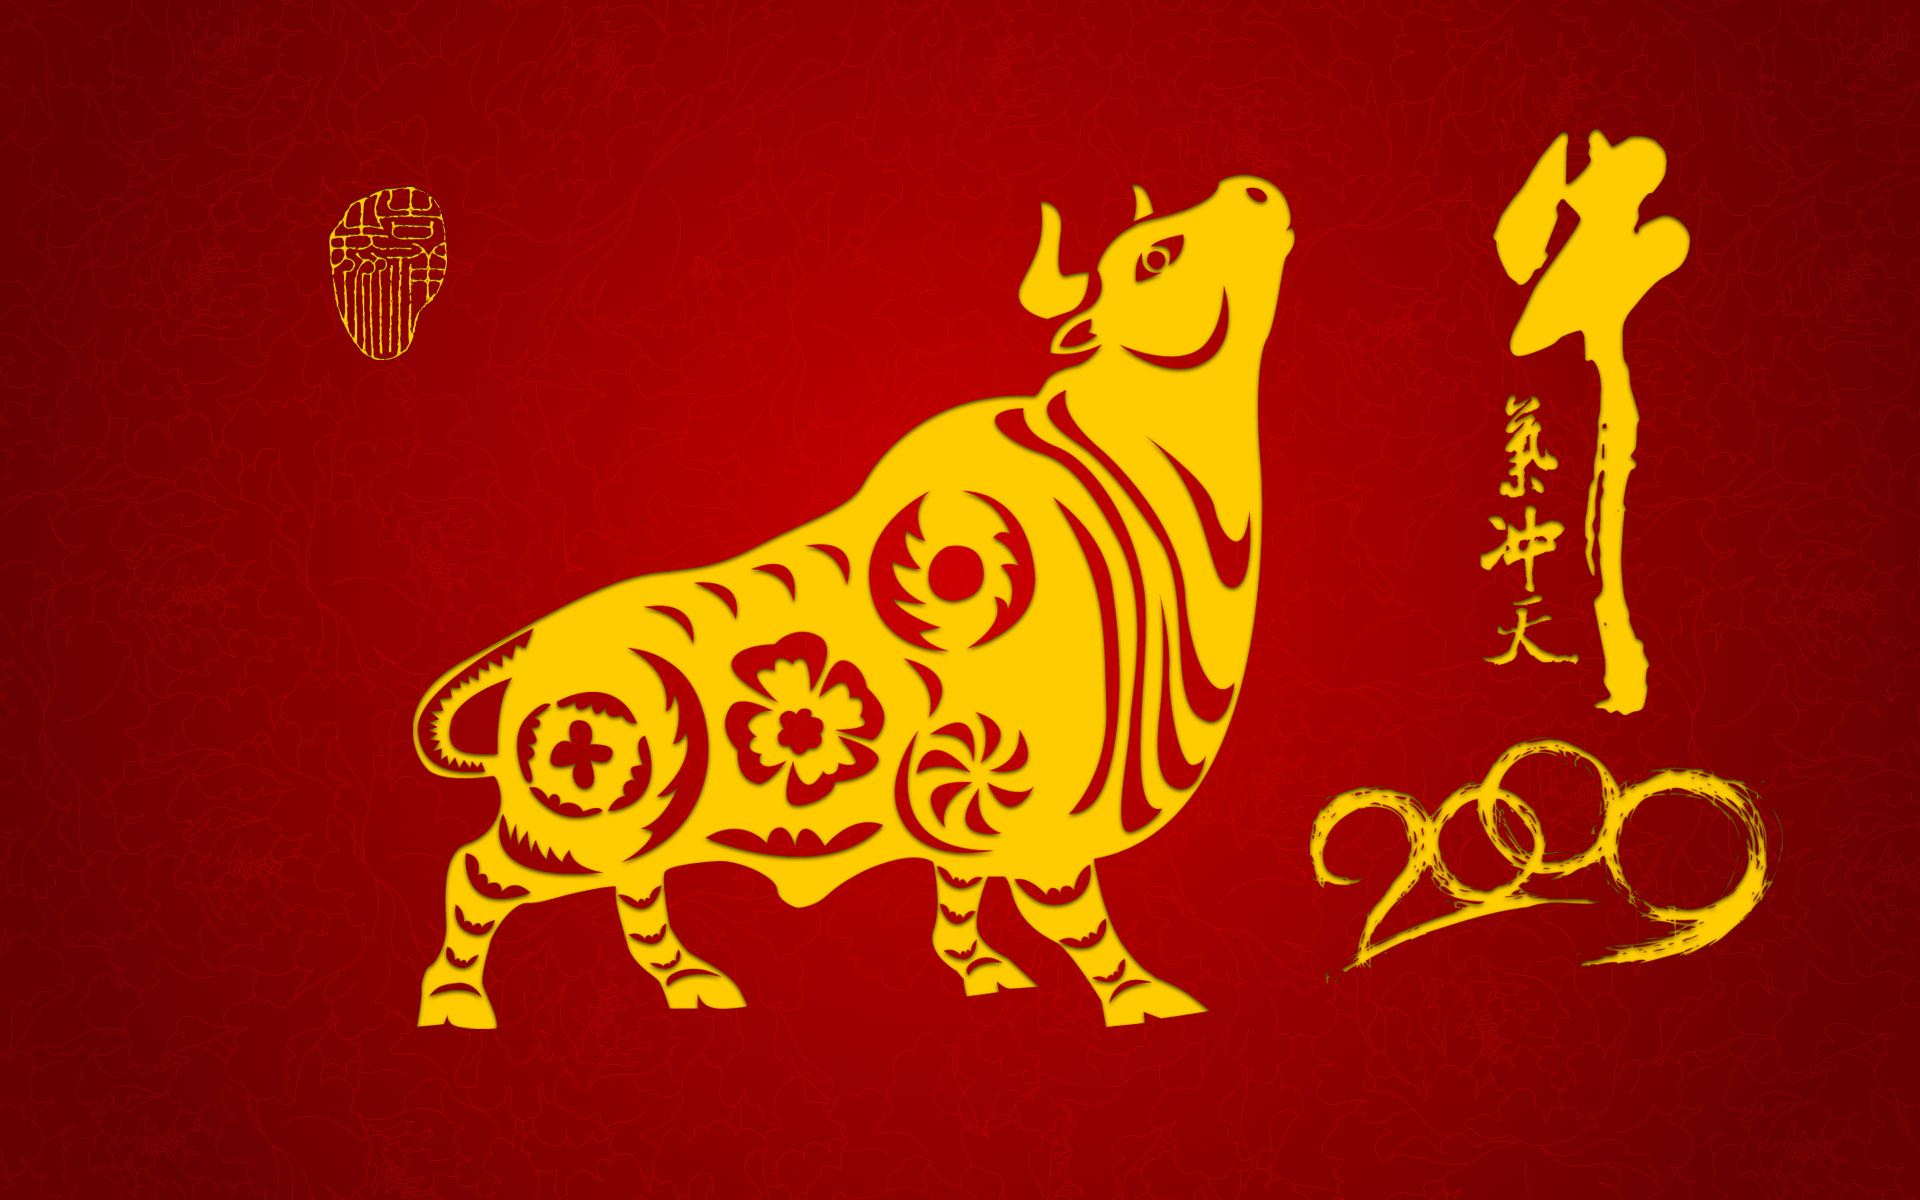 Bull wallpaper 6377 New Wallpapers Festival